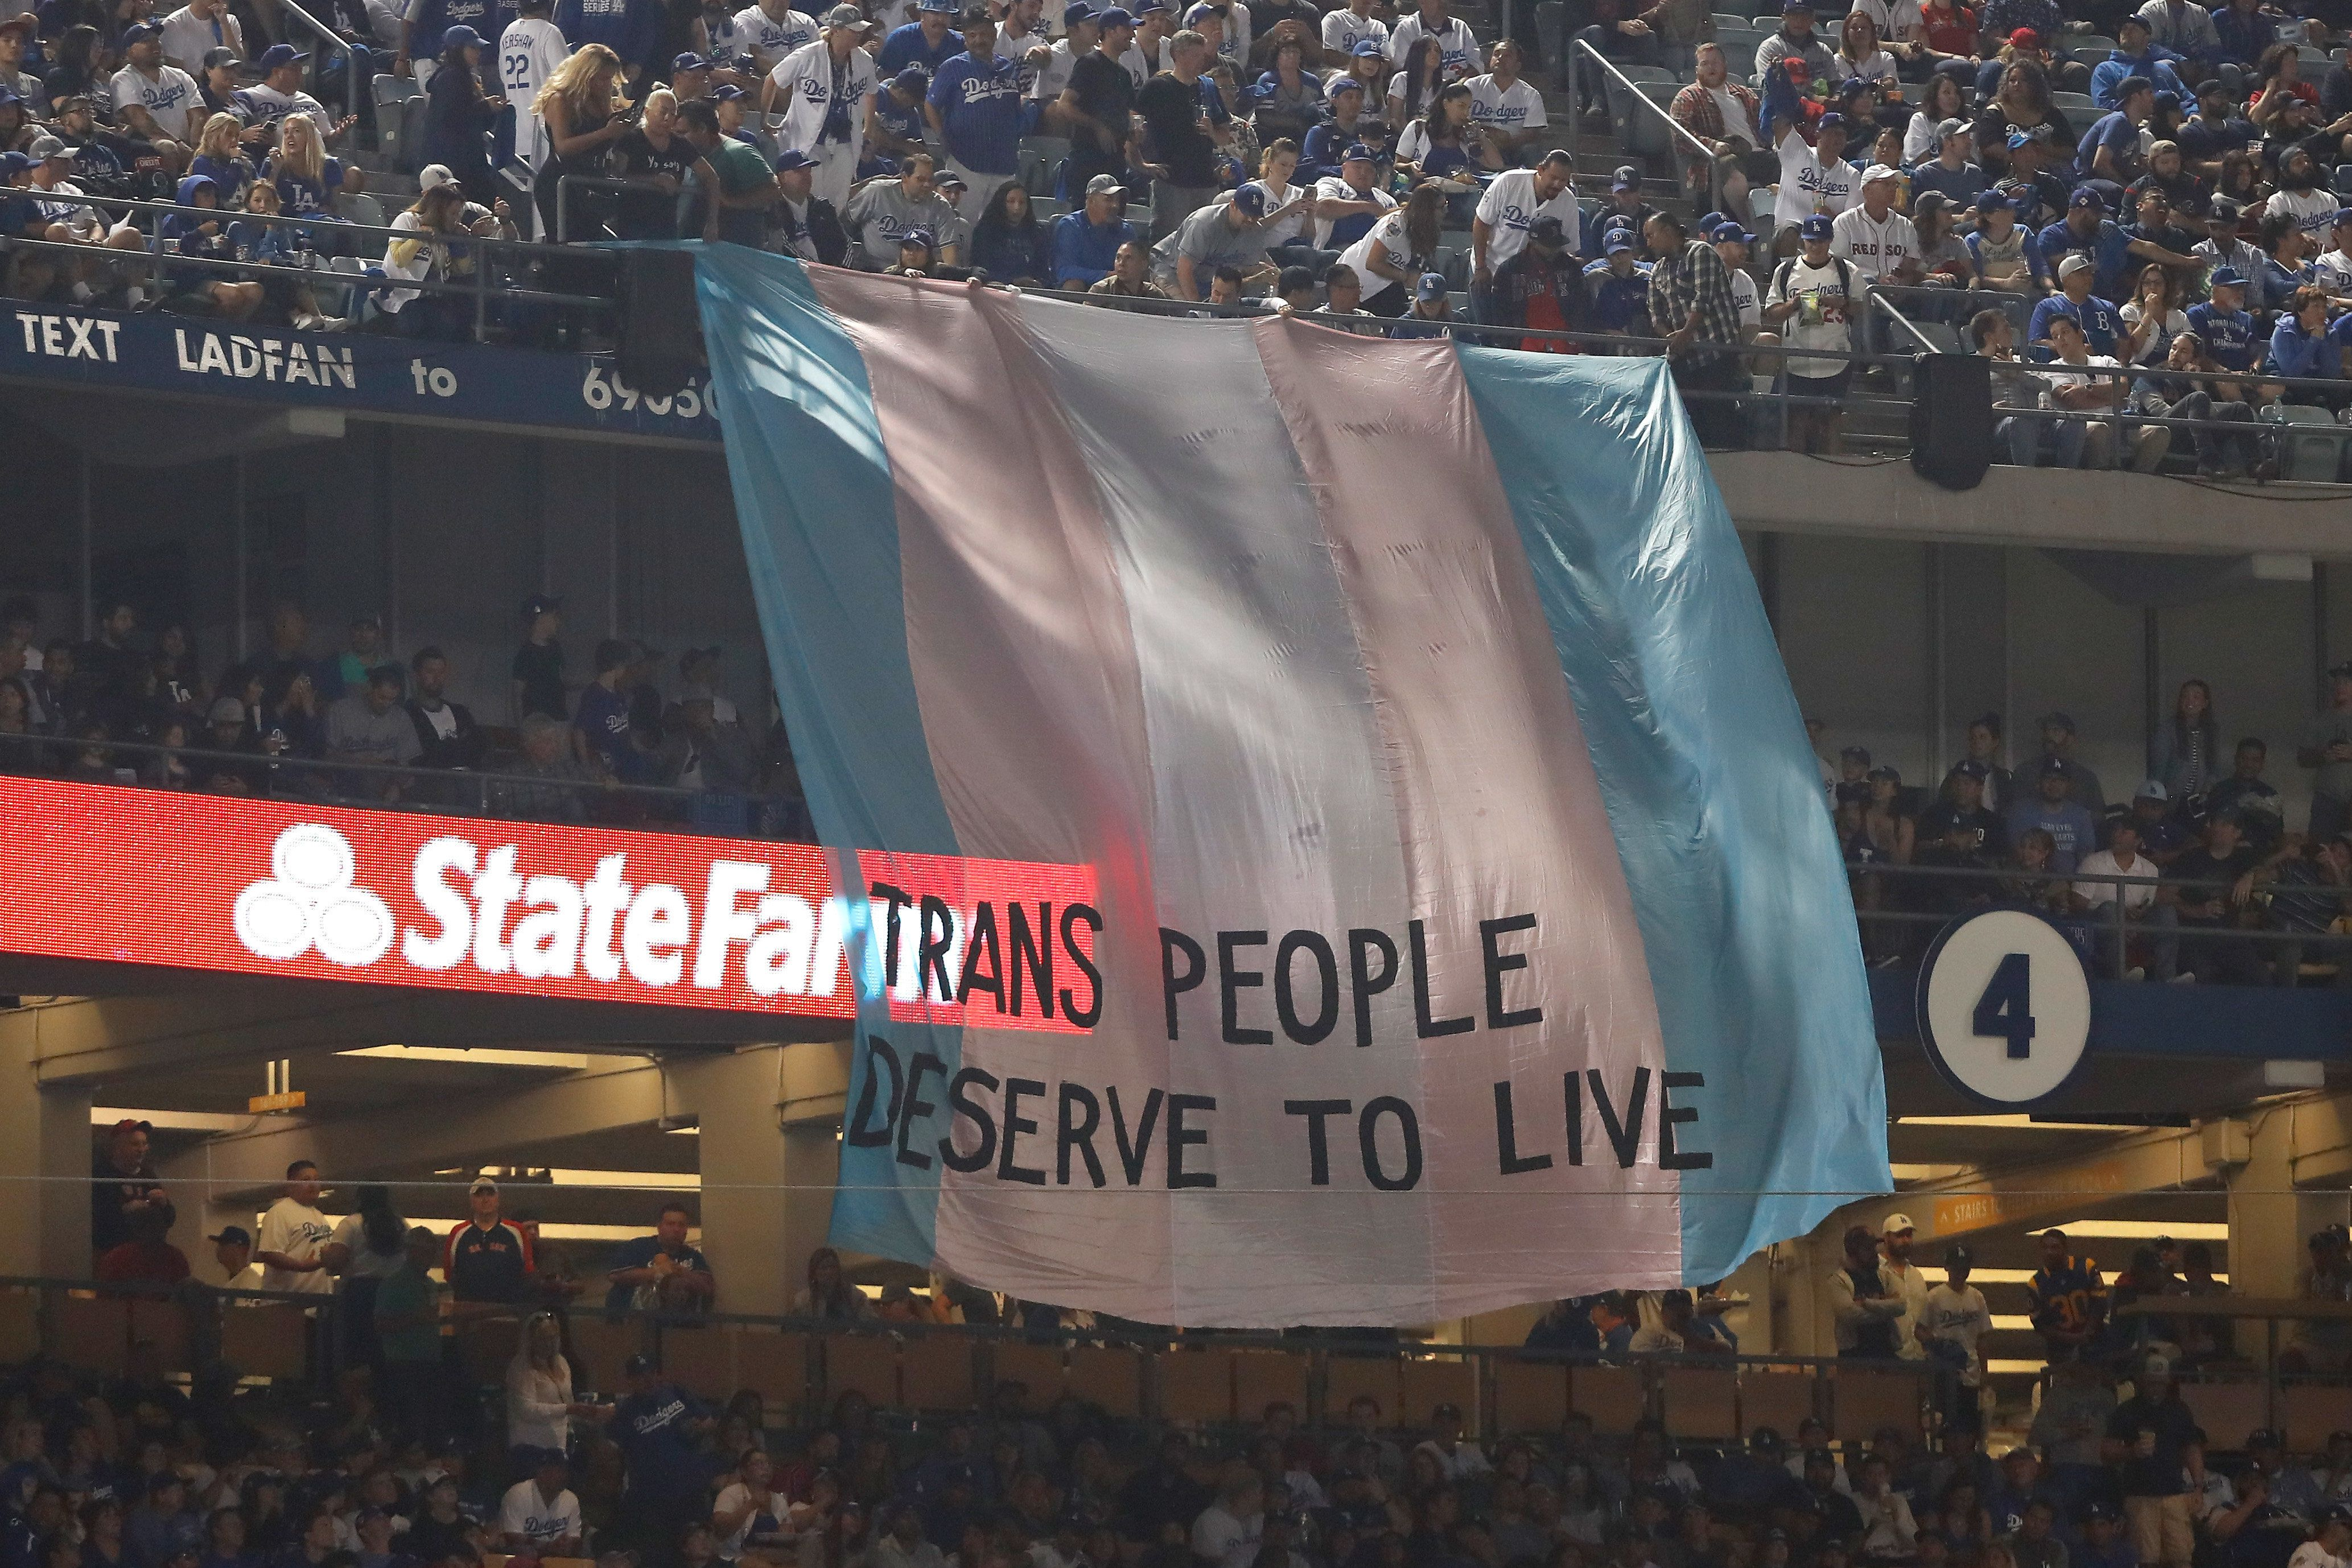 LOS ANGELES, CA - OCTOBER 28:  A banner with the words 'Trans People Deserve to Live' is displayed during Game Five of the 2018 World Series between the Los Angeles Dodgers and the Boston Red Sox at Dodger Stadium on October 28, 2018 in Los Angeles, California.  (Photo by Sean M. Haffey/Getty Images)